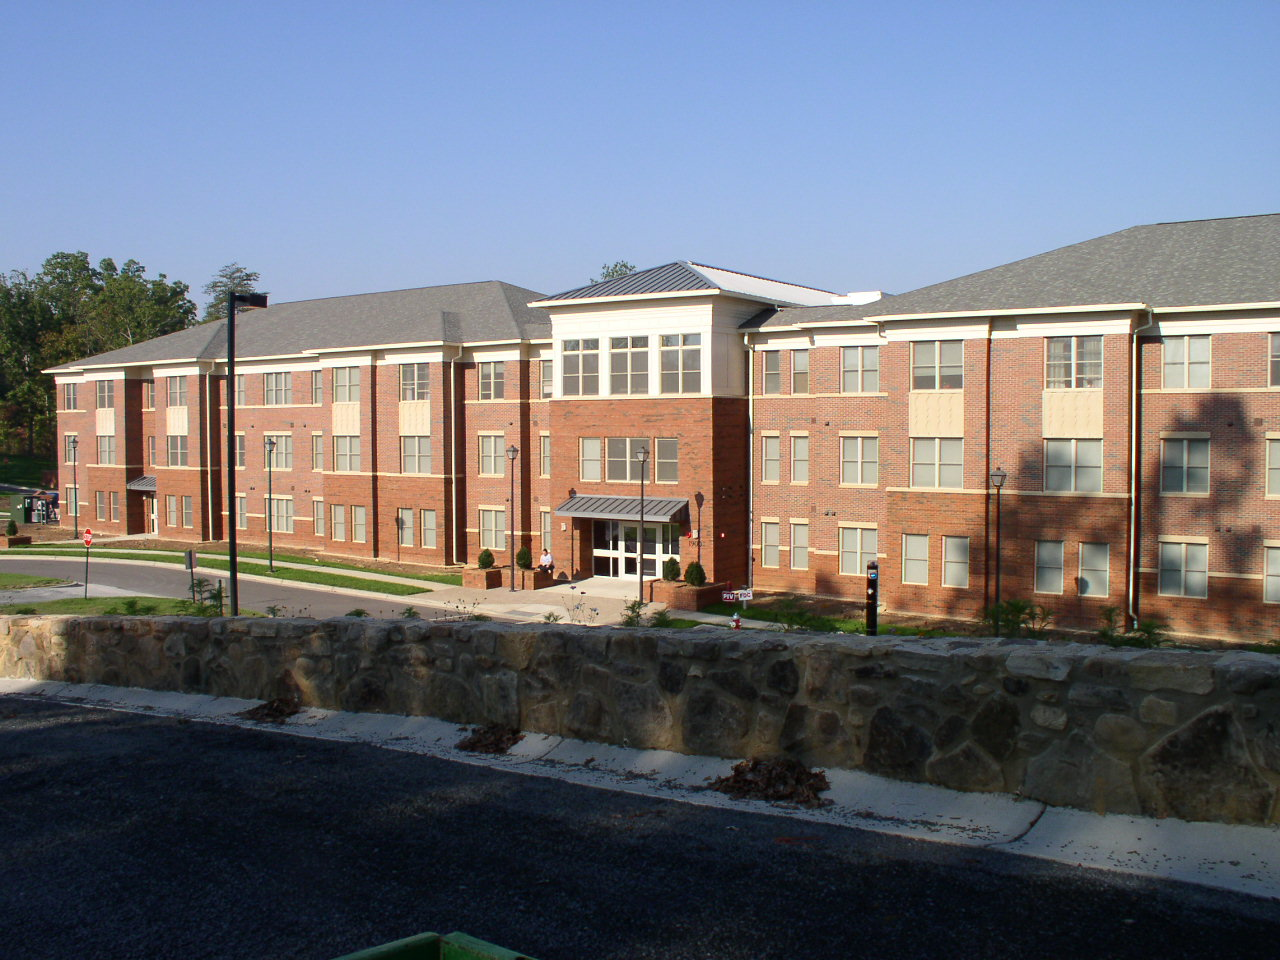 Baity Hill 1600 Student Family Housing